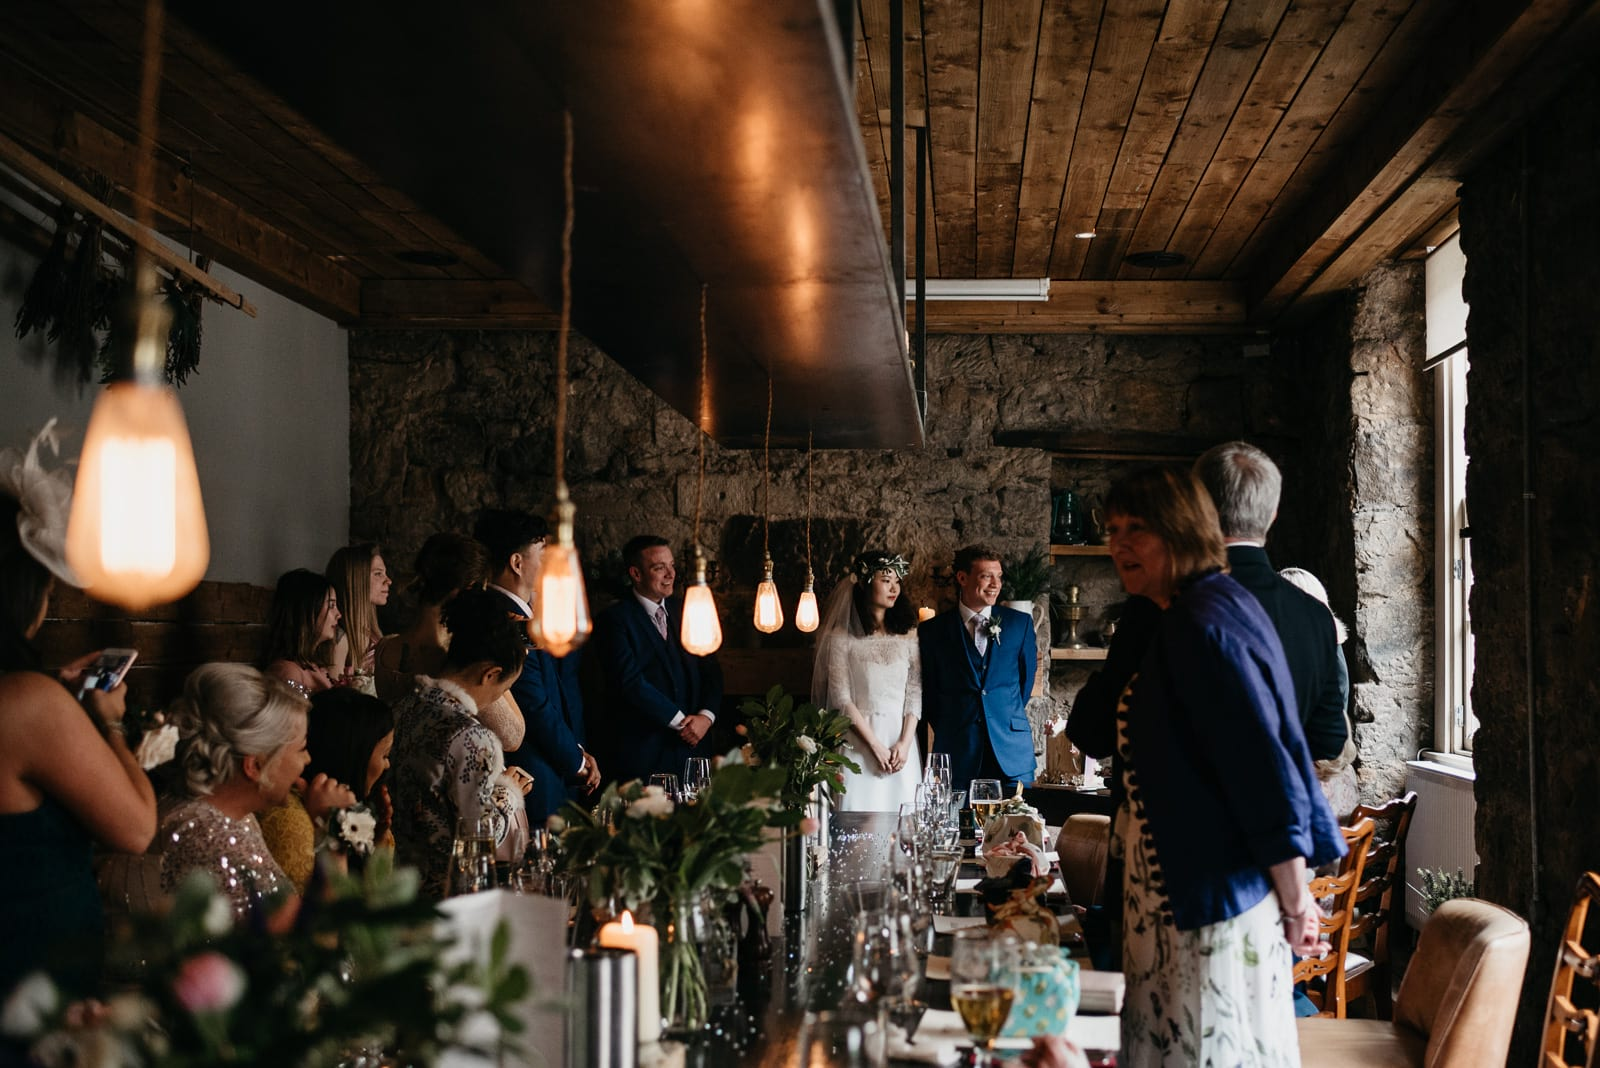 Intimate wedding ceremony at the Bothy, Glasgow